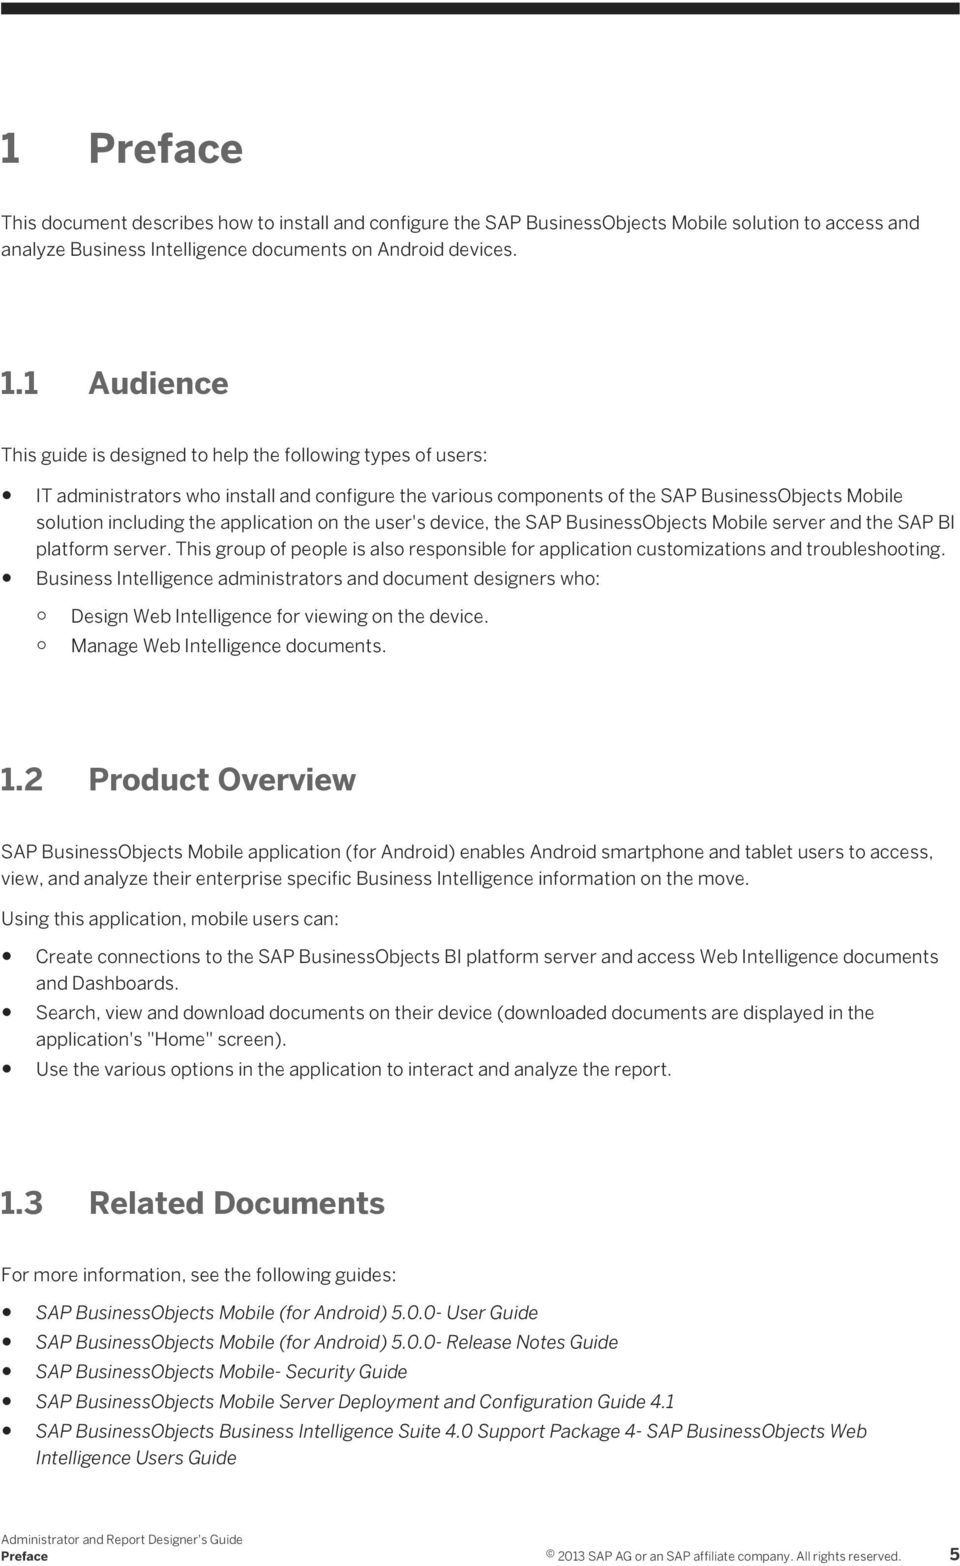 application on the user's device, the SAP BusinessObjects Mobile server and  the SAP BI platform